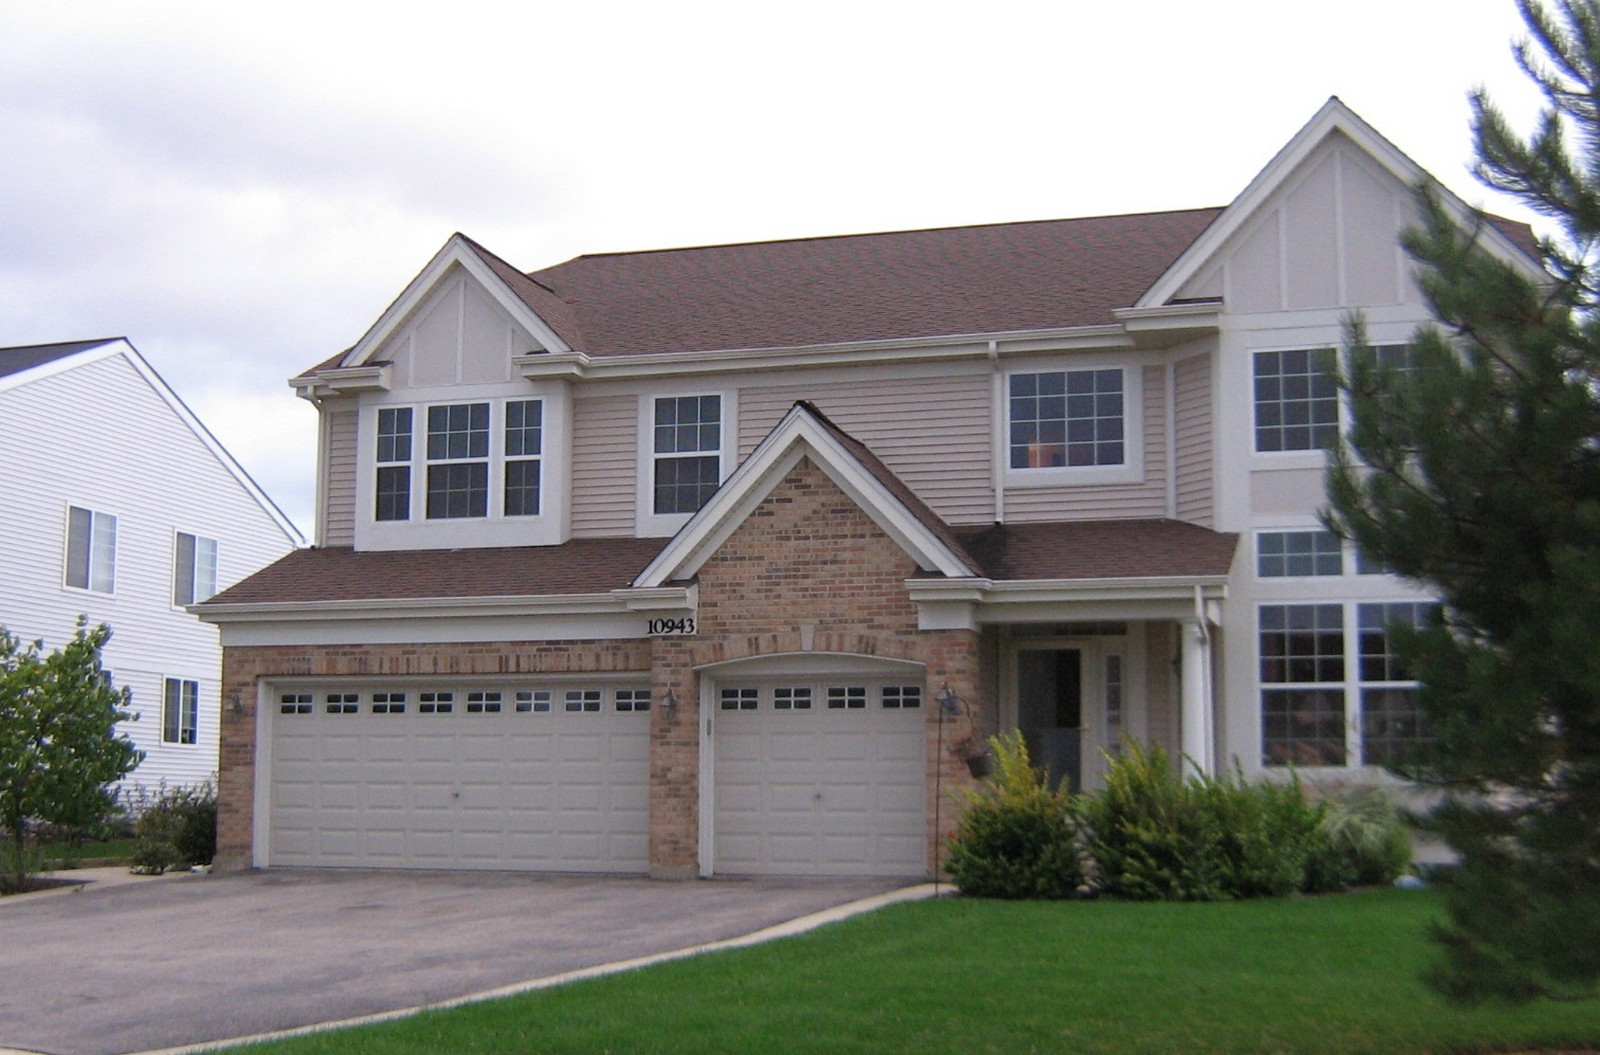 Real Estate Photography - 10943 Concord, Huntley, IL, 60142 - Front View